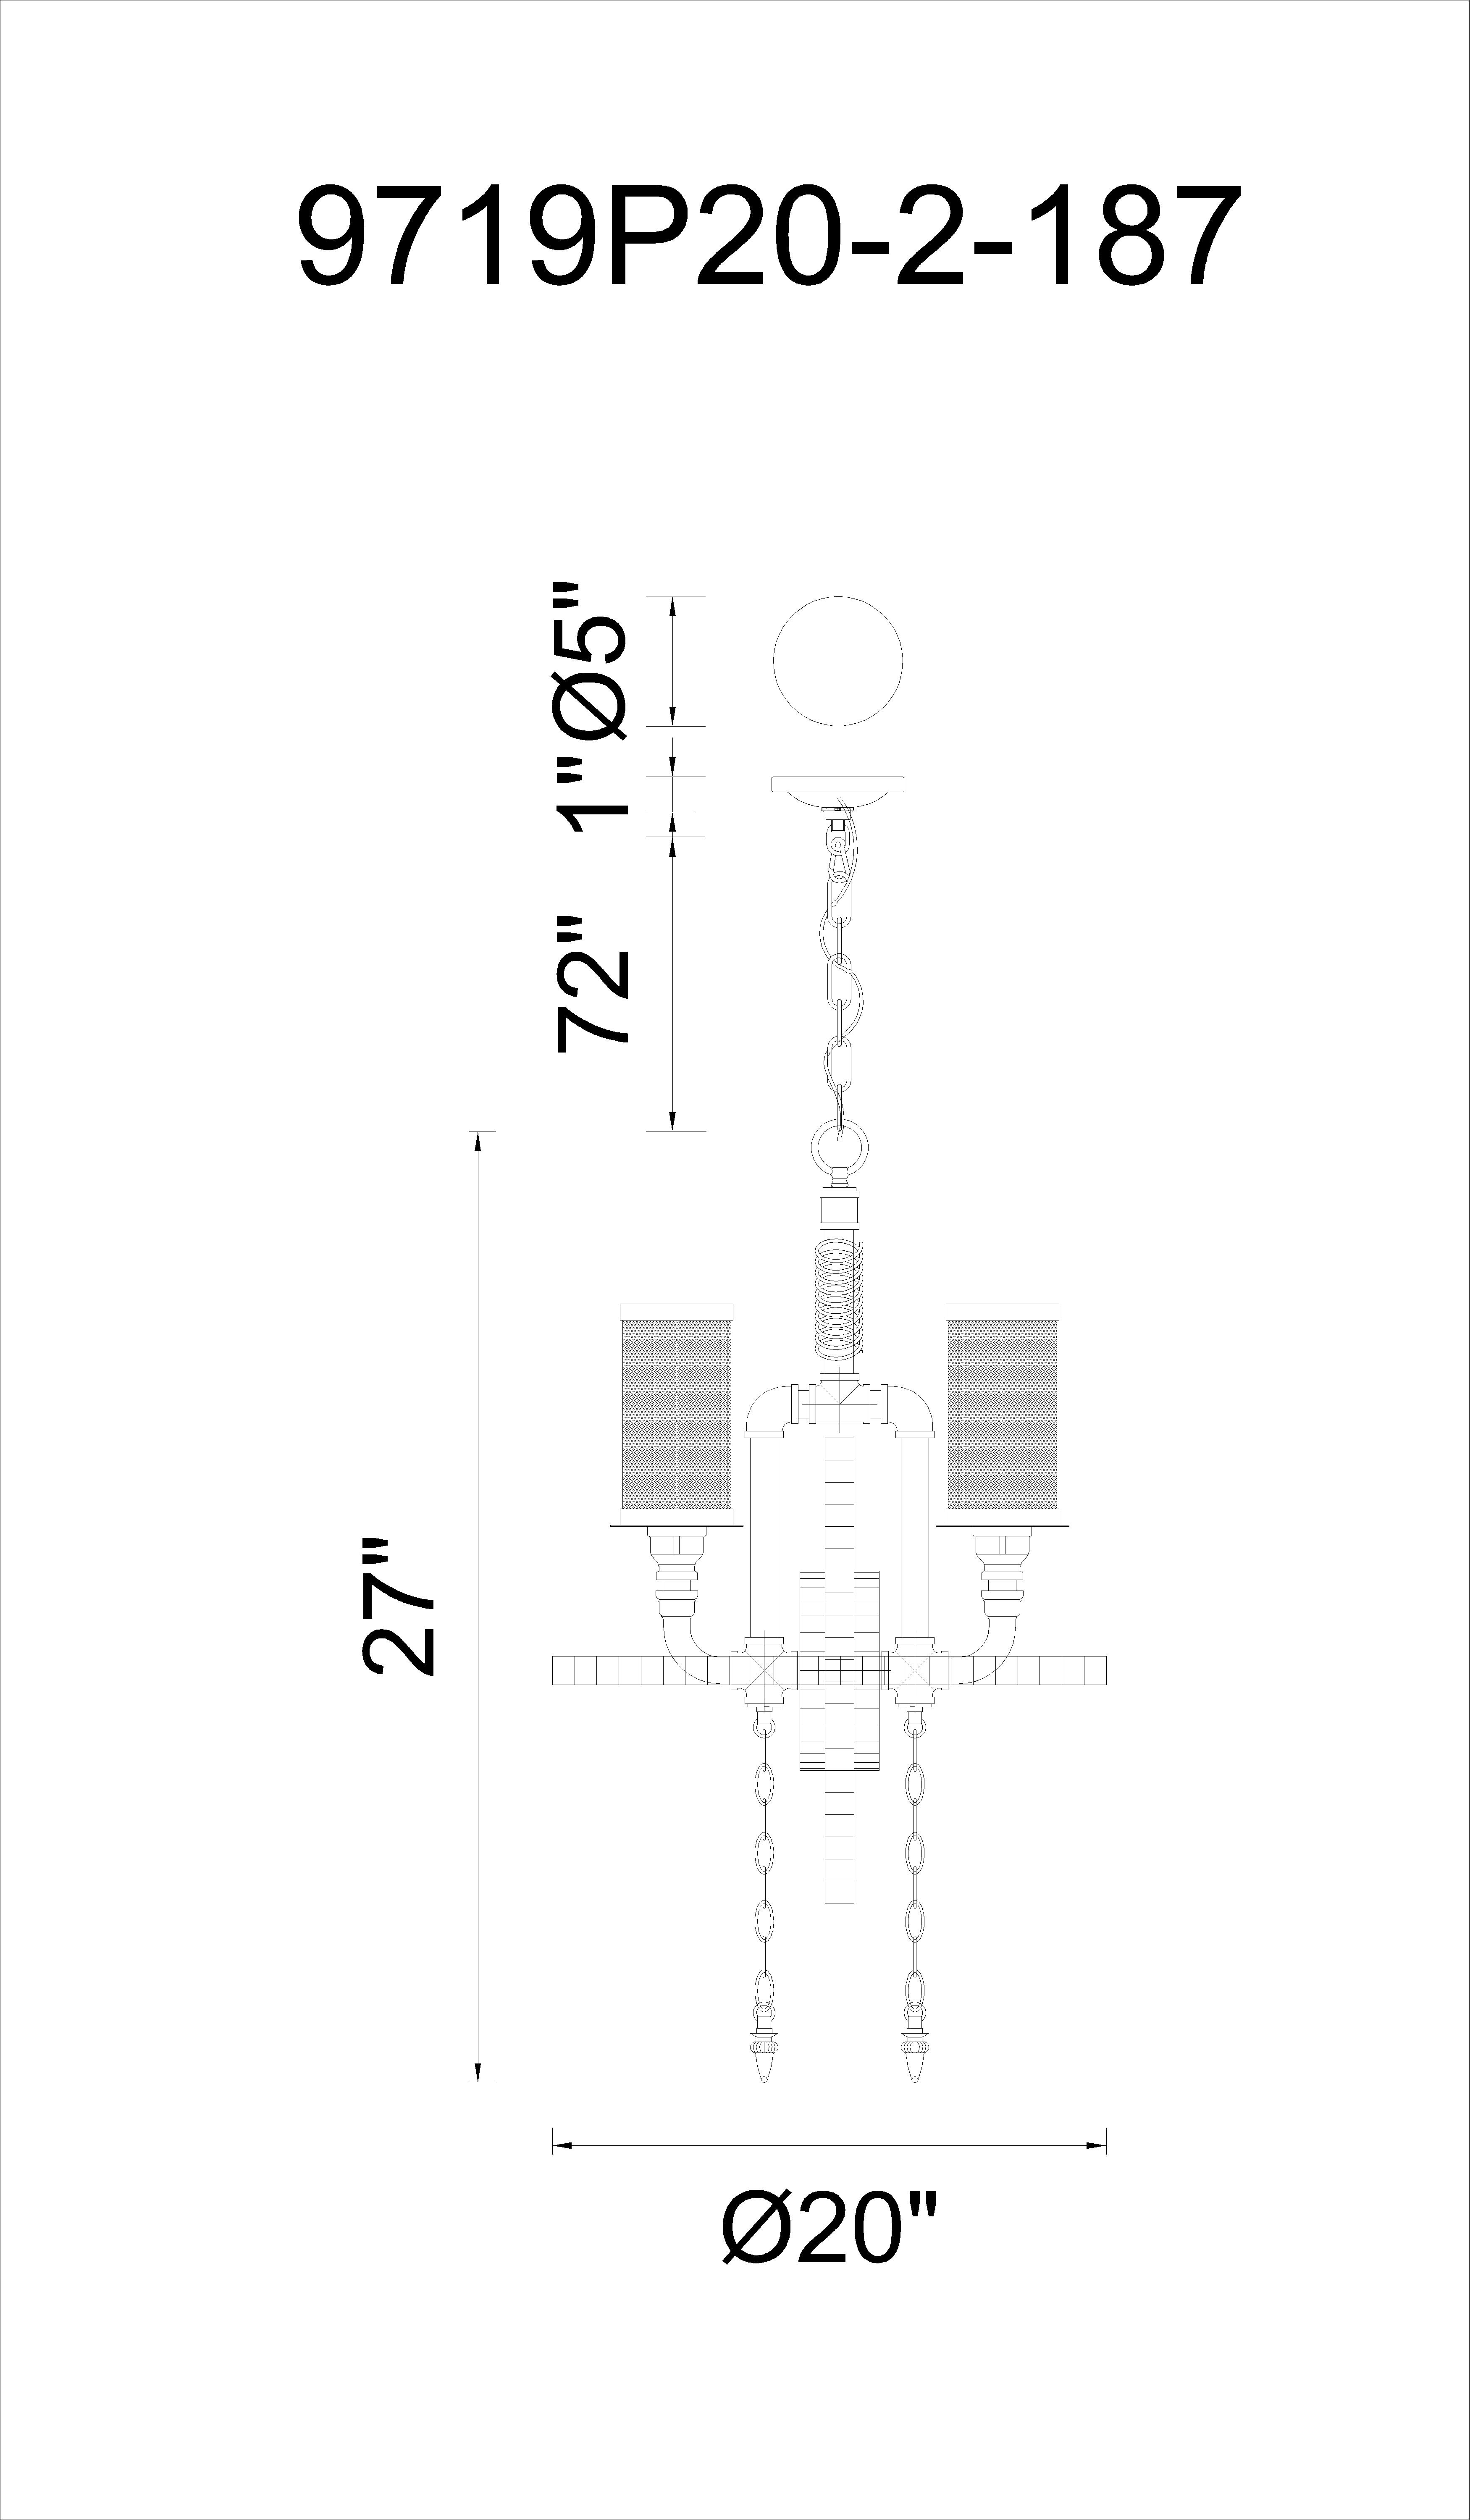 CWI Lighting Manchi 2 Light Up Chandelier With Gray Finish Model: 9719P20-2-187 Line Drawing